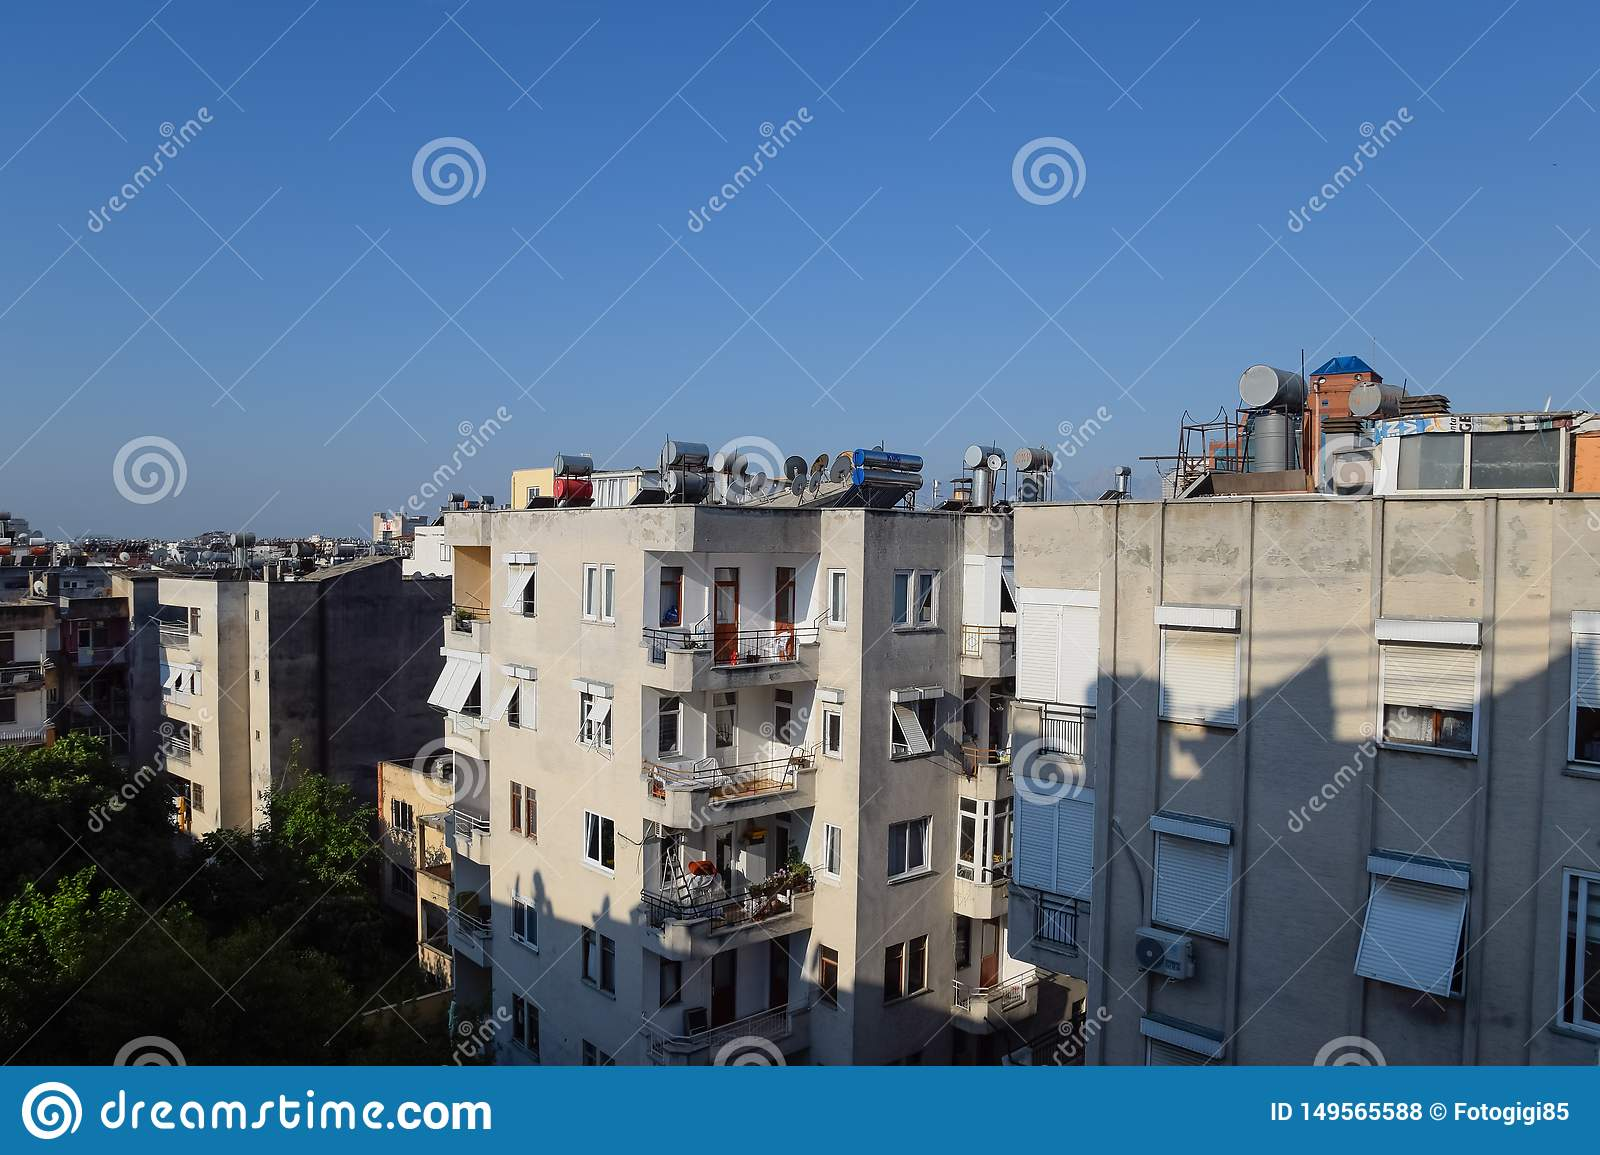 High-rise buildings in Antalya with barrels for water heating on the roof and sun blinds on the